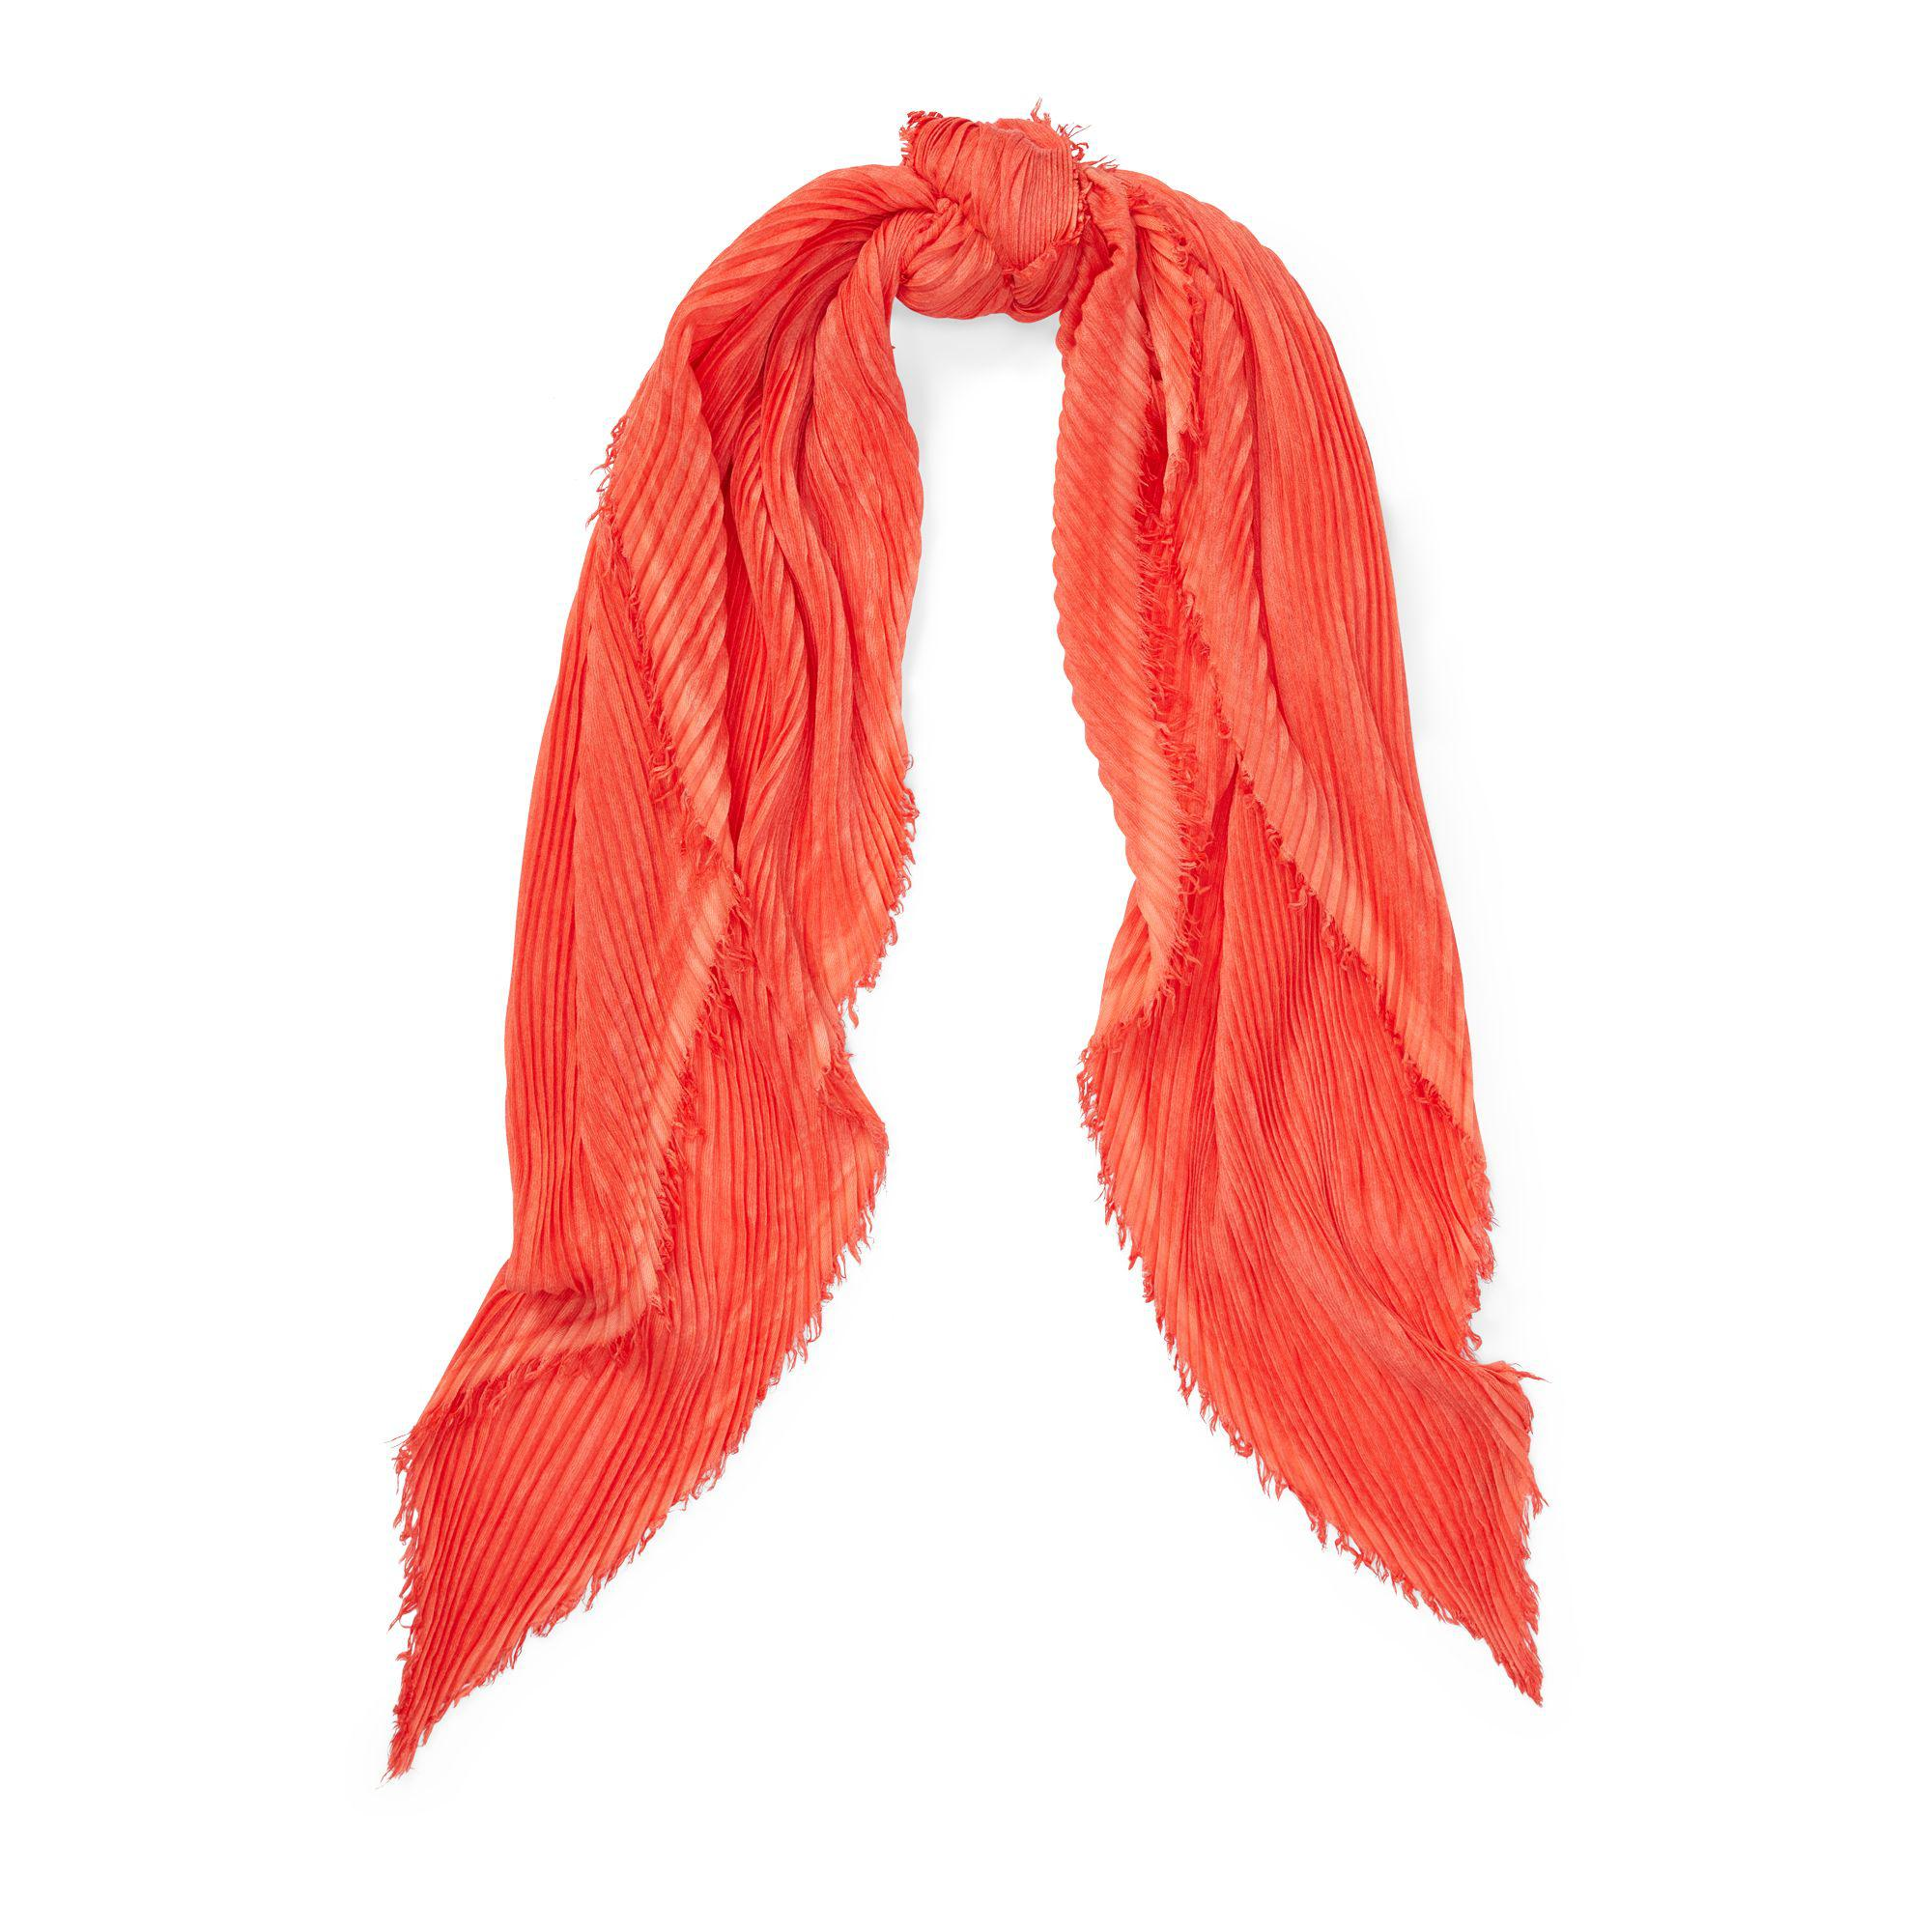 Lyst - Polo Ralph Lauren Pleated Diamond Scarf in Red 653cafdabcb